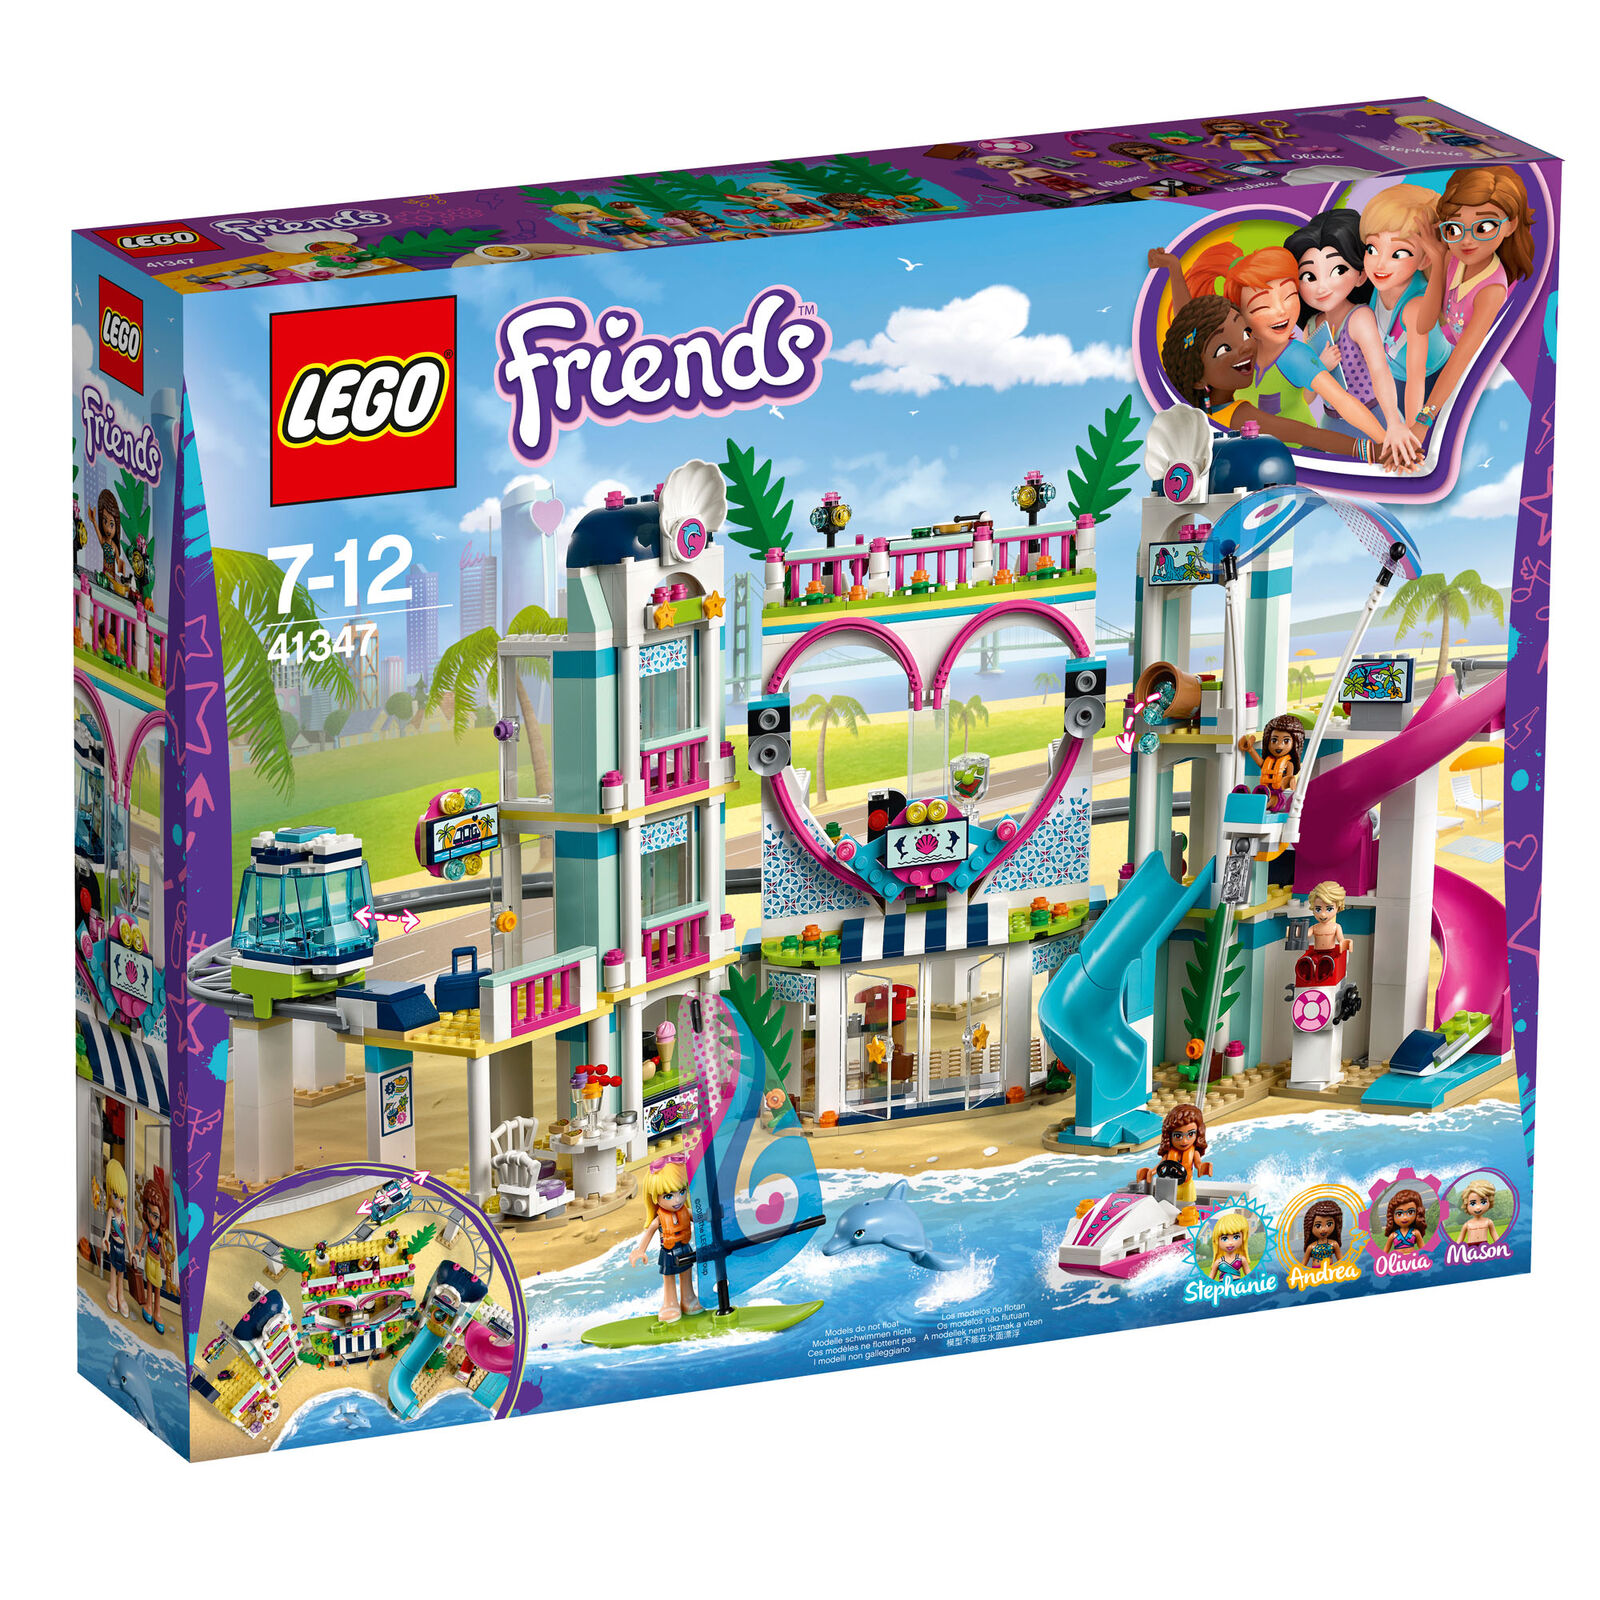 41347 LEGO Friends Heartlake City Resort 1017 Pieces Age 7+ New Release For 2018